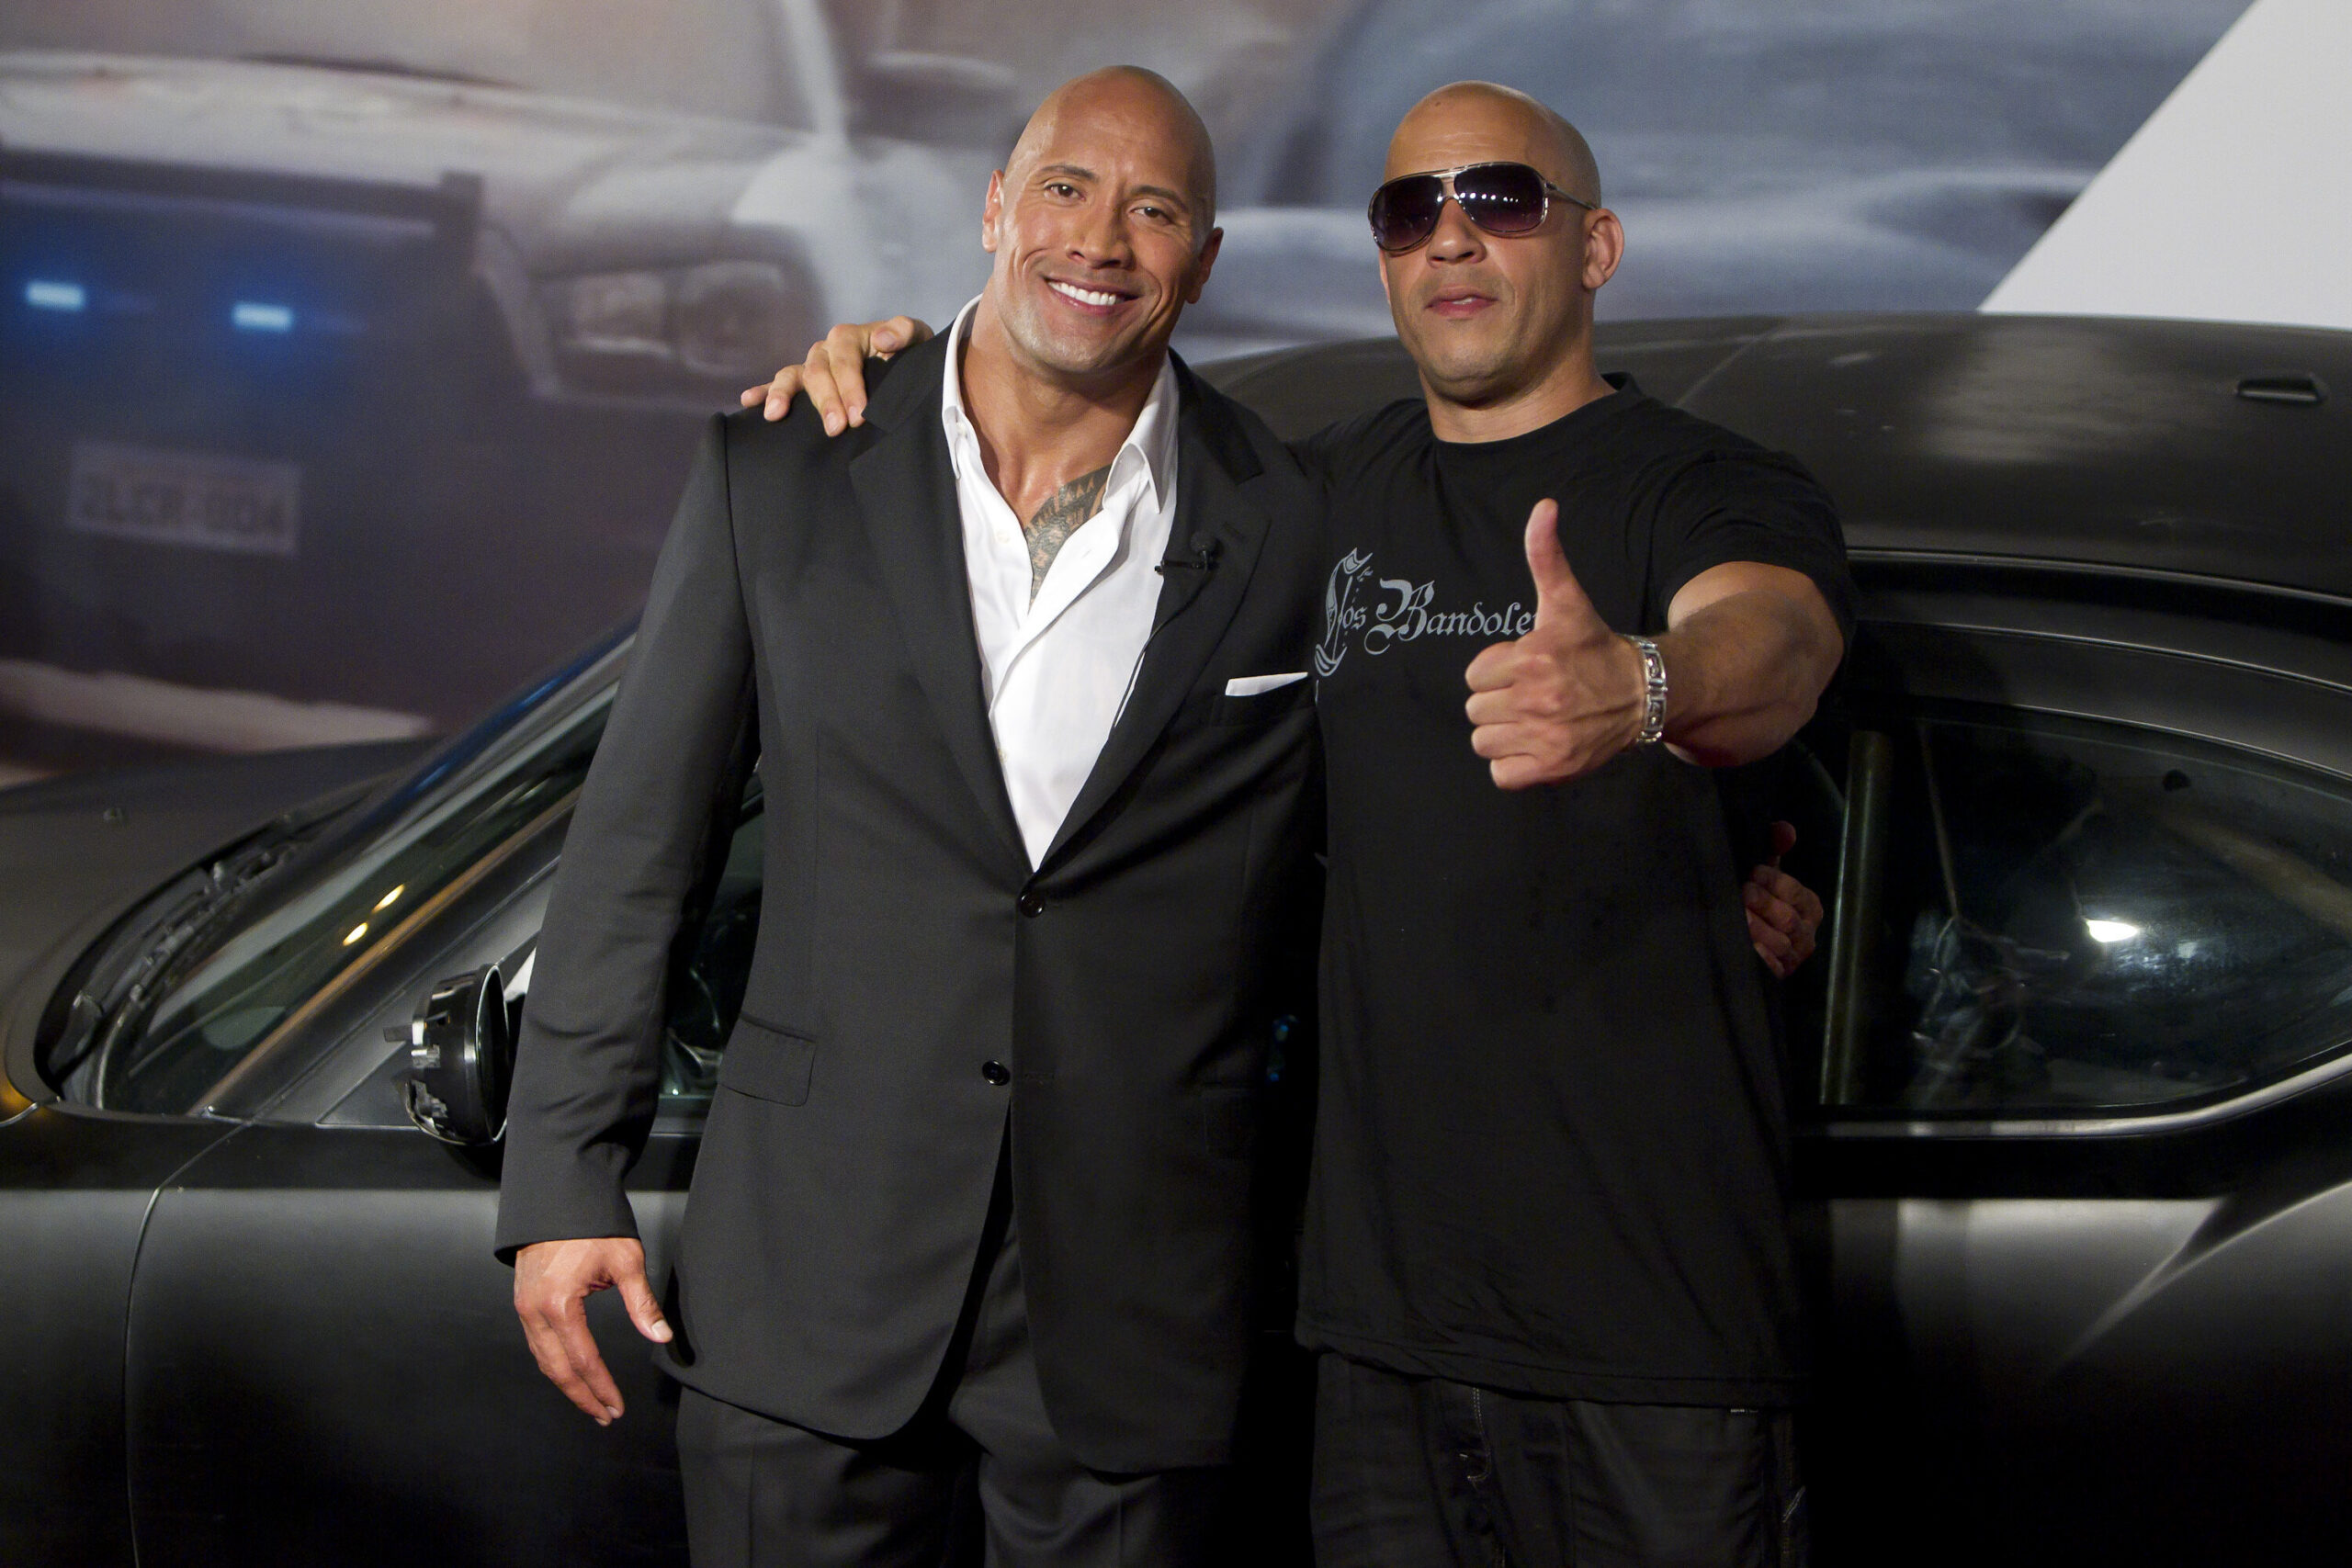 <i>Buda Mendes/LatinContent/Getty Images</i><br/>Vin Diesel may have viewed his highly publicized feud with Dwayne